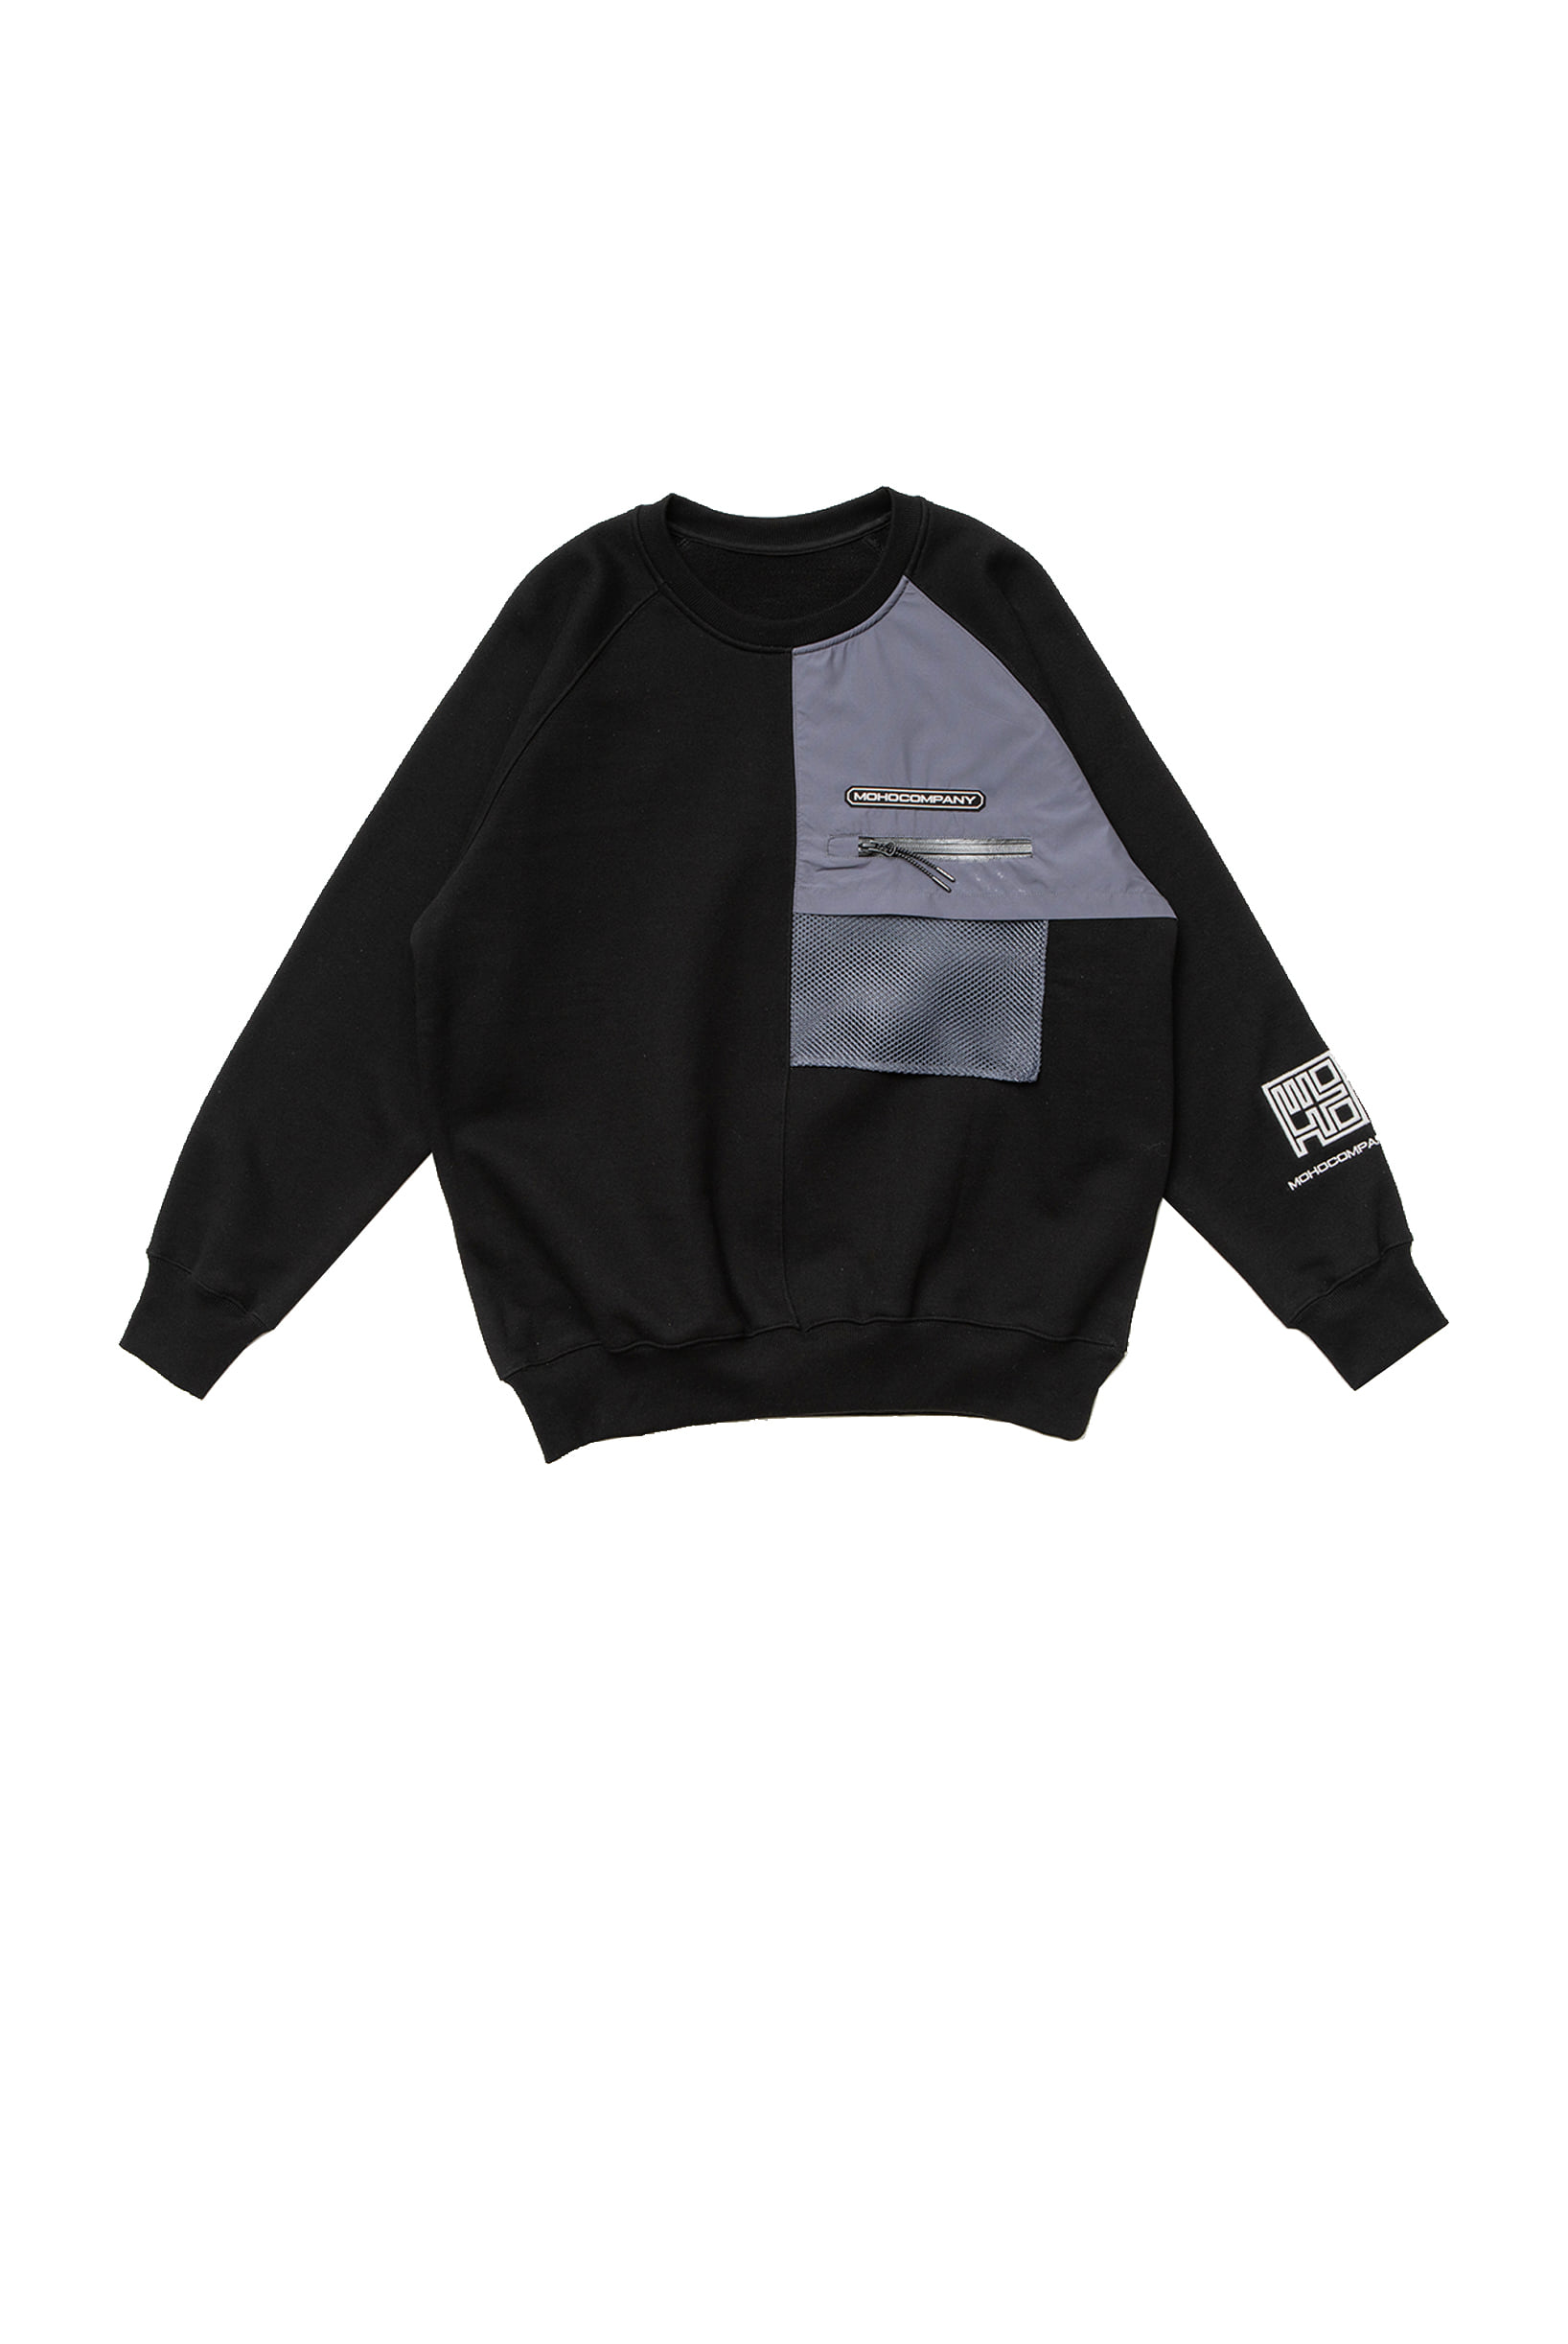 MESH POCKET SWEATSHIRT (BLACK)